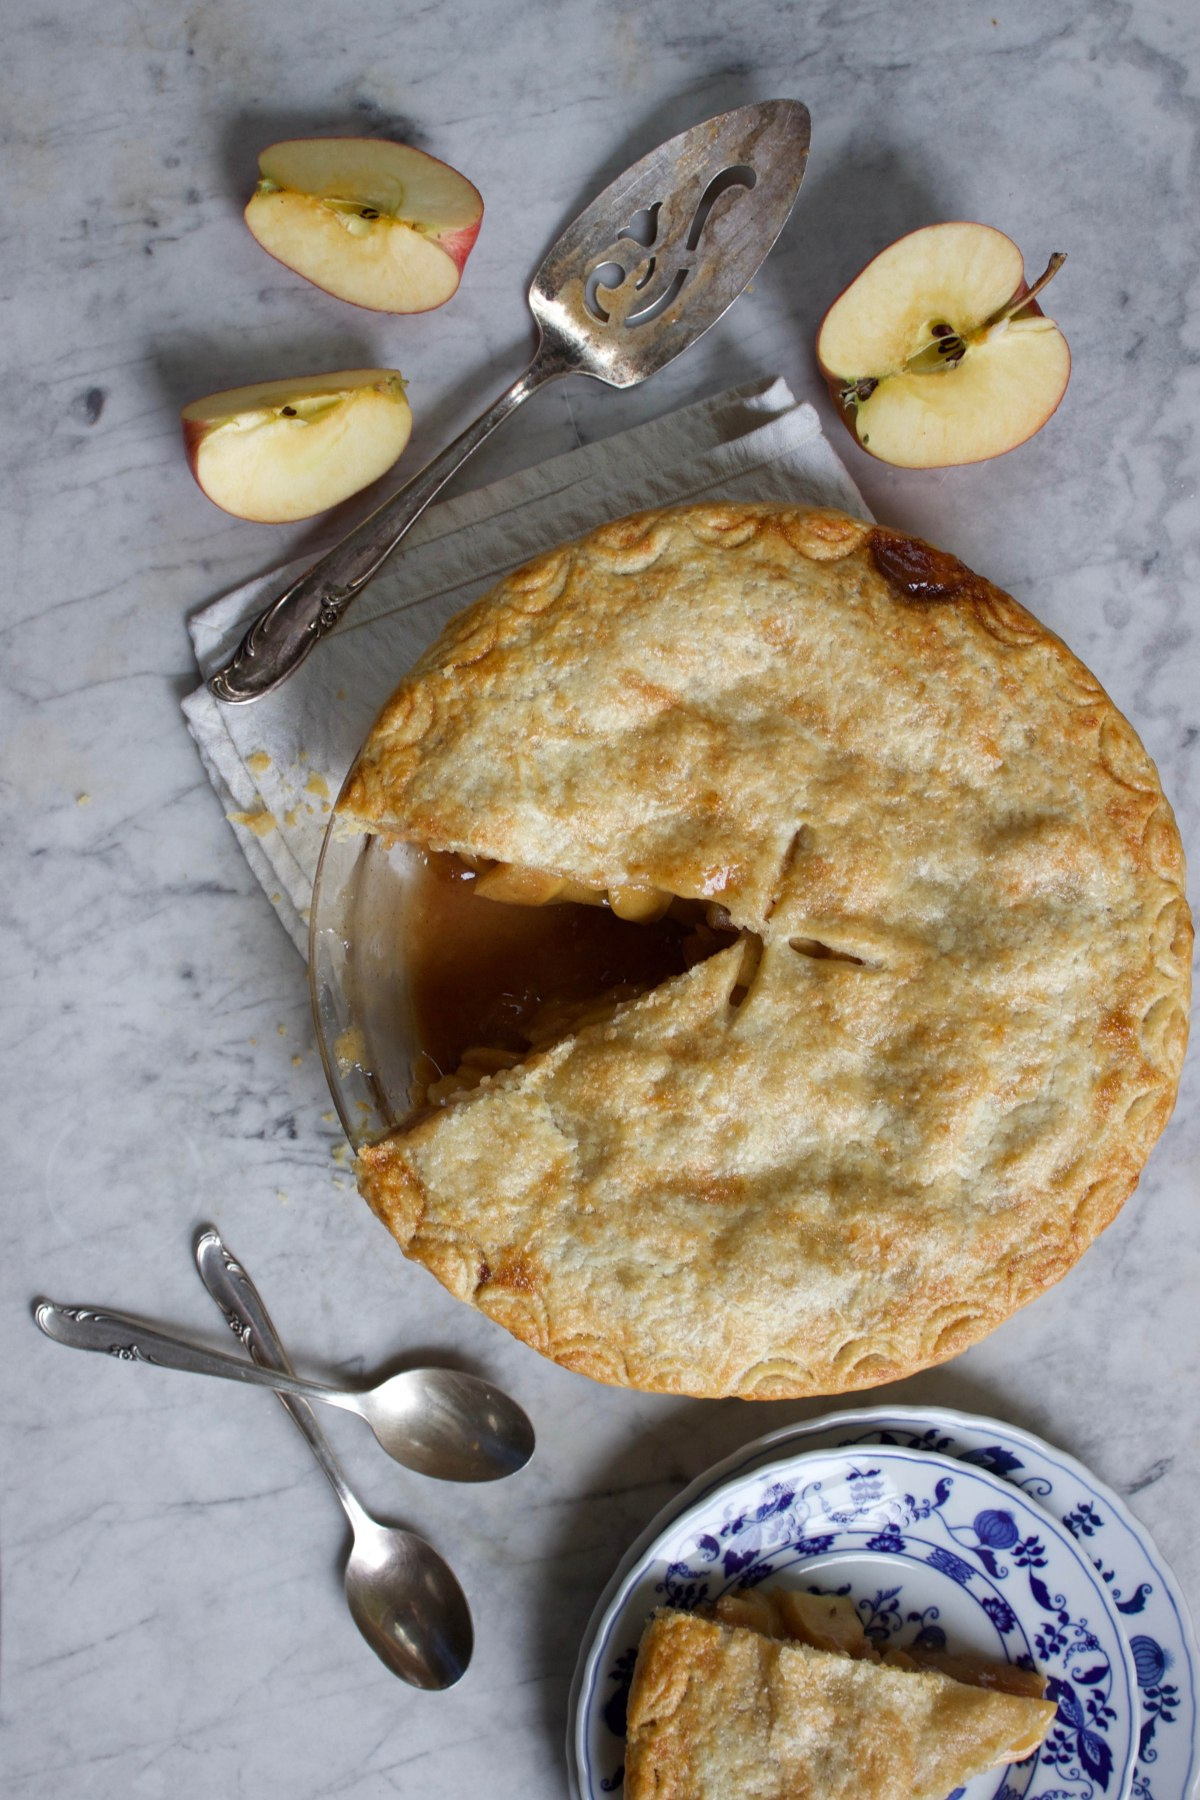 Apple pie resting on a marble surface beside sliced apples and two silver spoons.